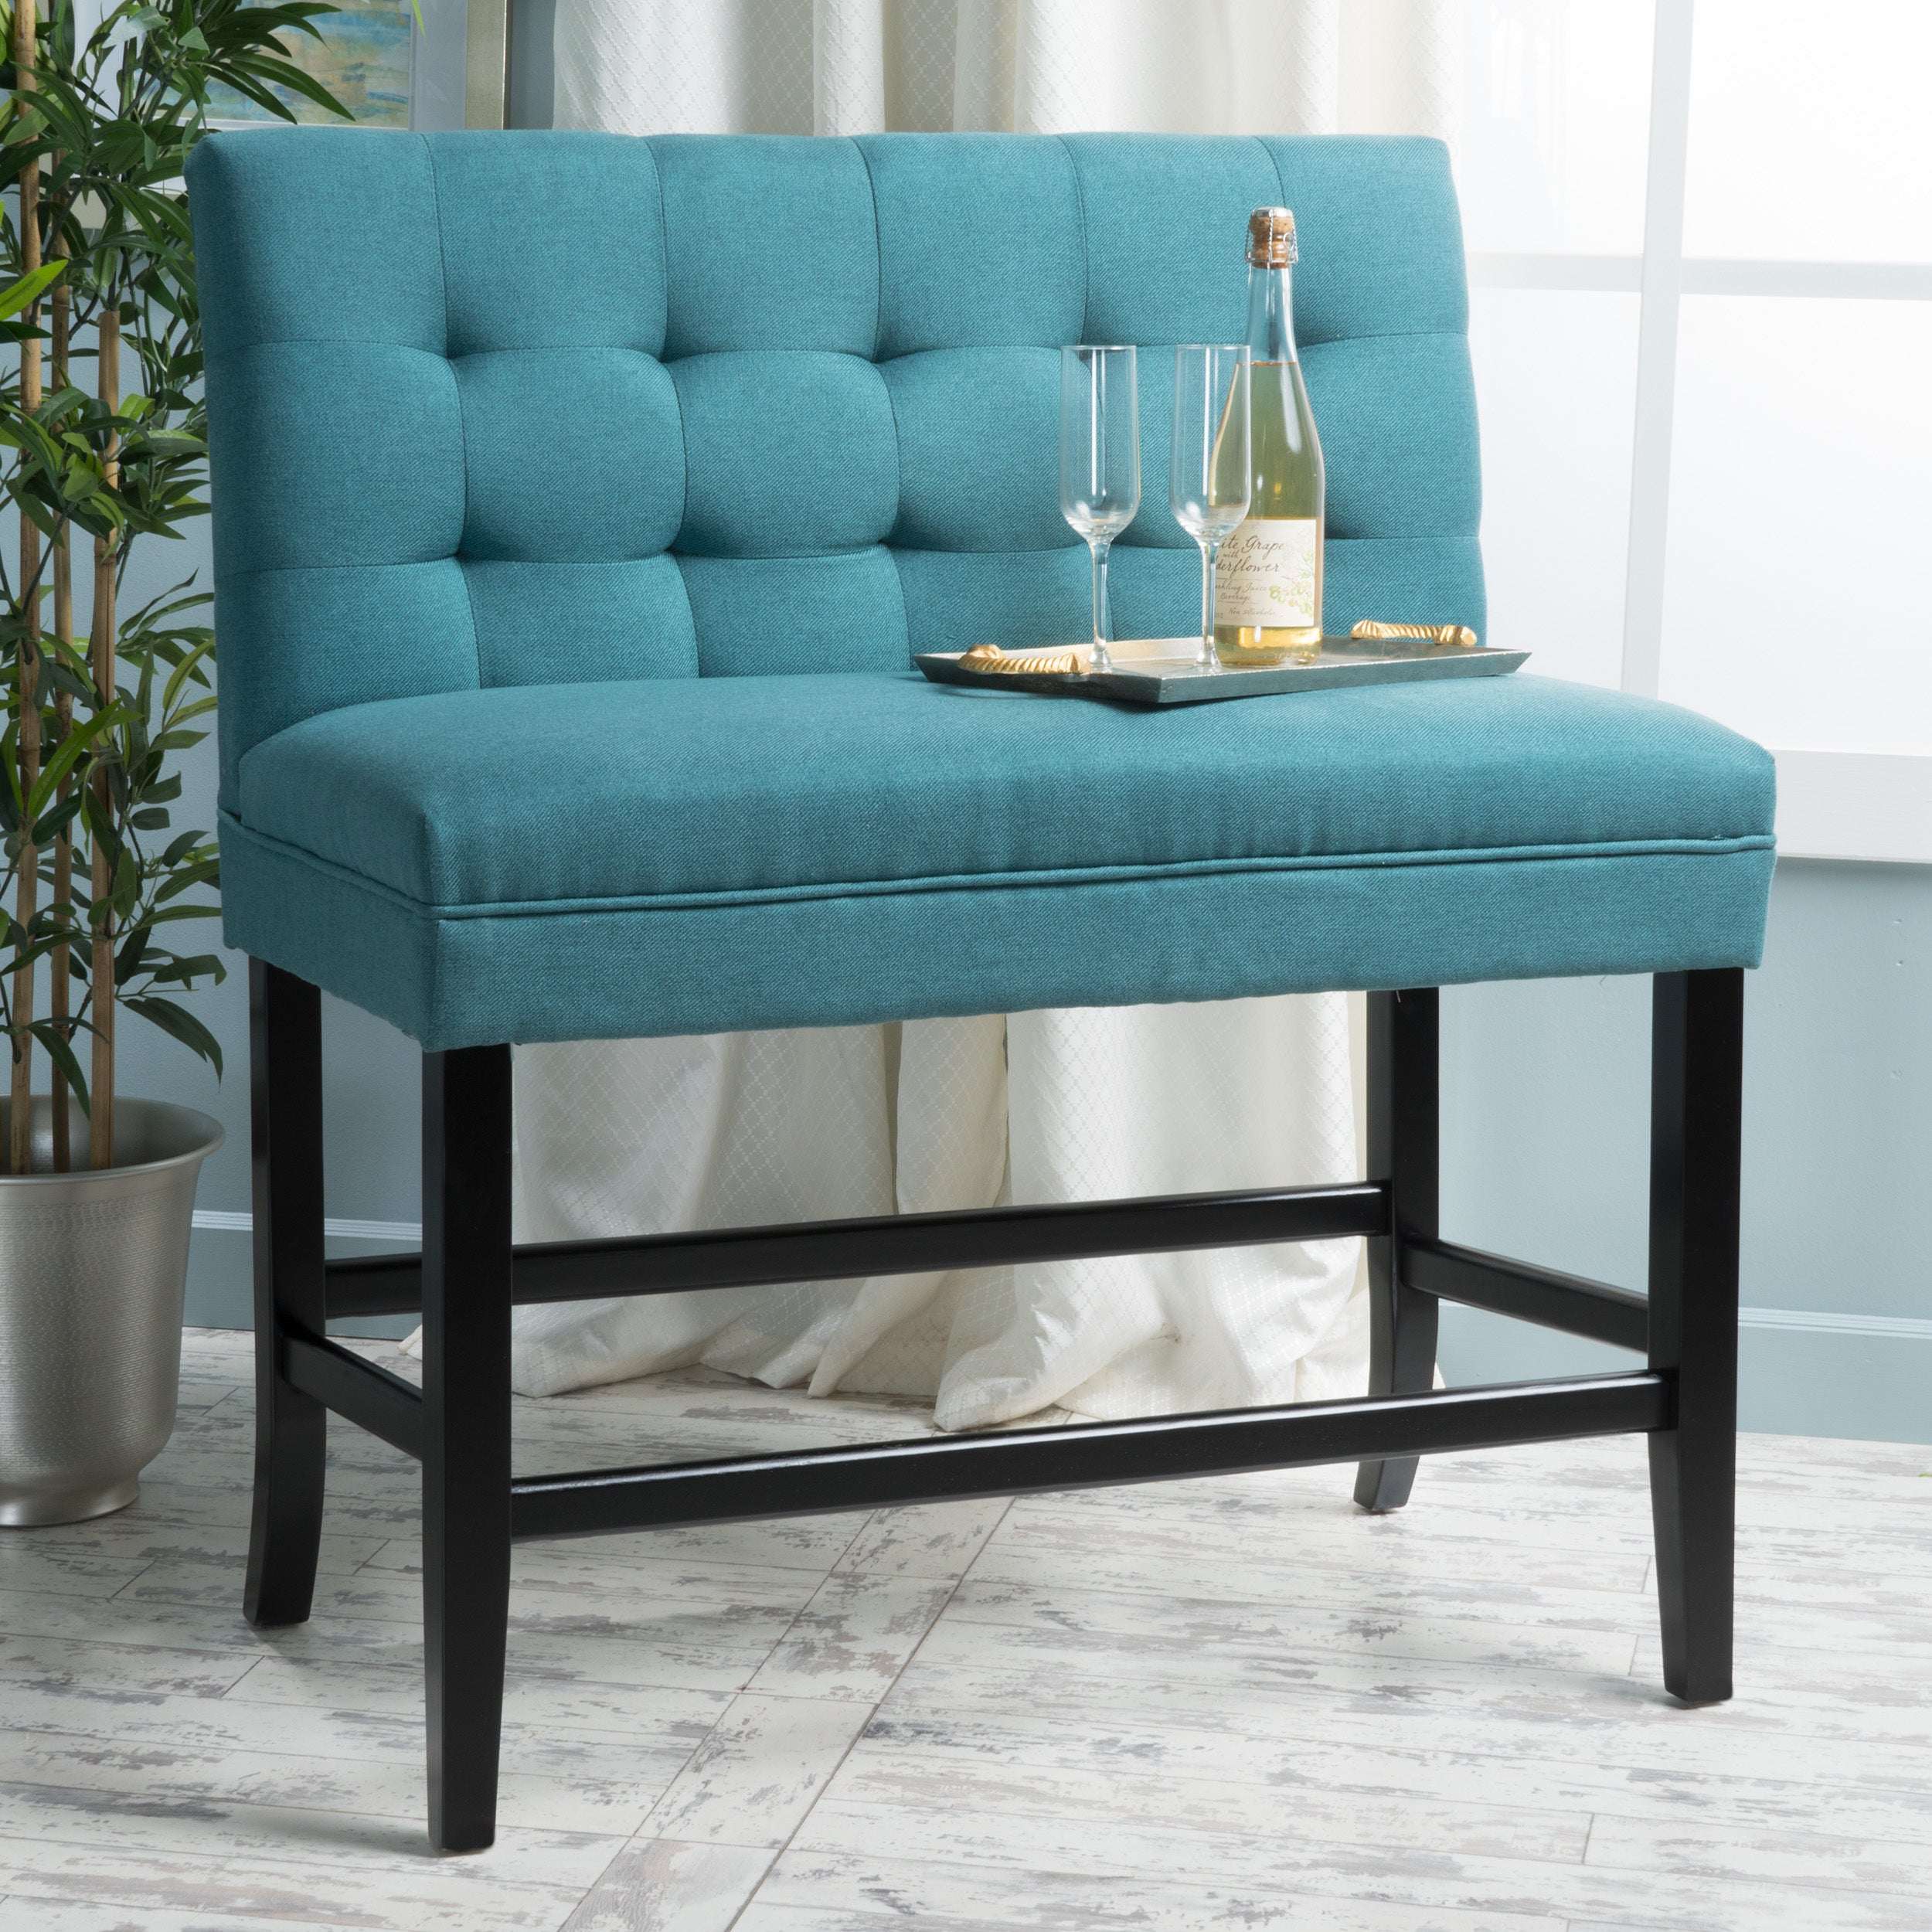 Shop Kenan 26-inch Tufted Fabric Barstool Dining Bench by ...